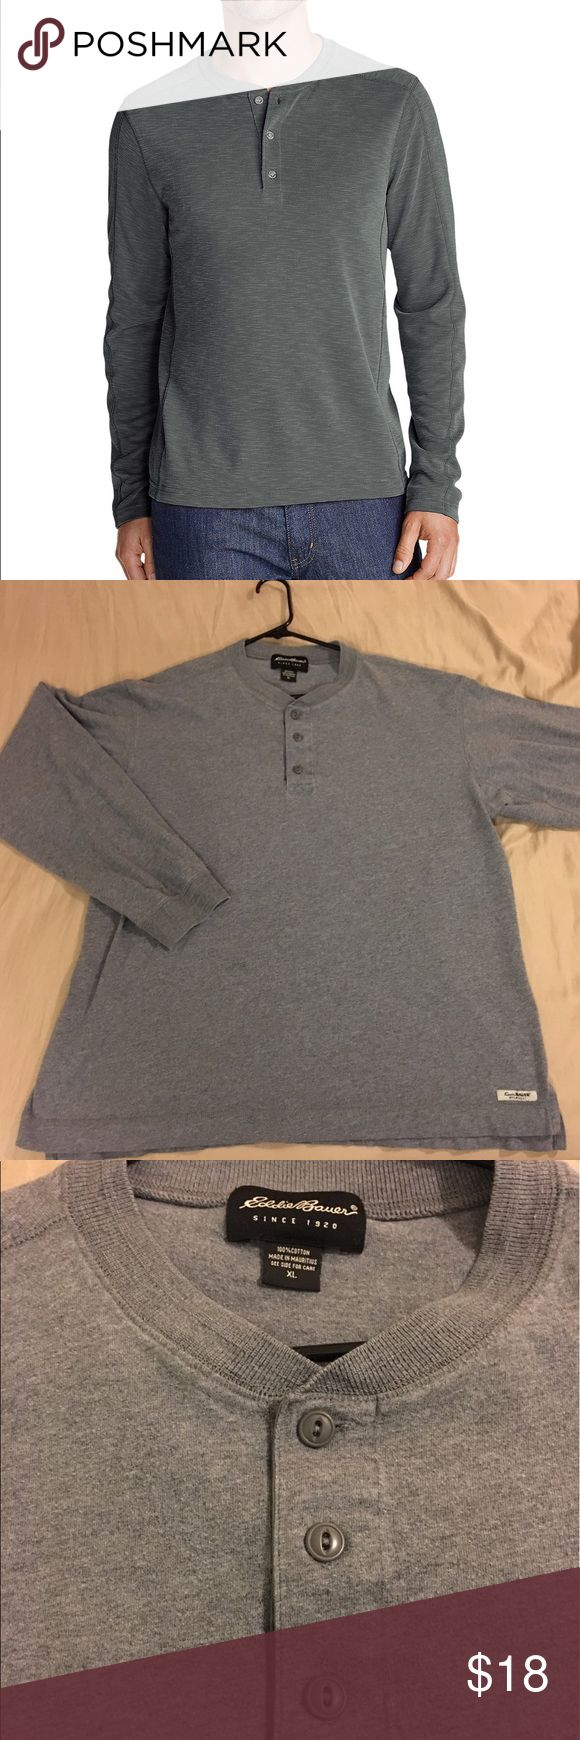 Men's XL Eddie Bauer Grey Henley Shirt Nice Men's XL Eddie Bauer Grey Henley Long Sleeve Shirt! Slightly worn no holes or stains! *modeled pic is for fit reference and may be slightly different from actual item for sale Eddie Bauer Shirts Tees - Long Sleeve